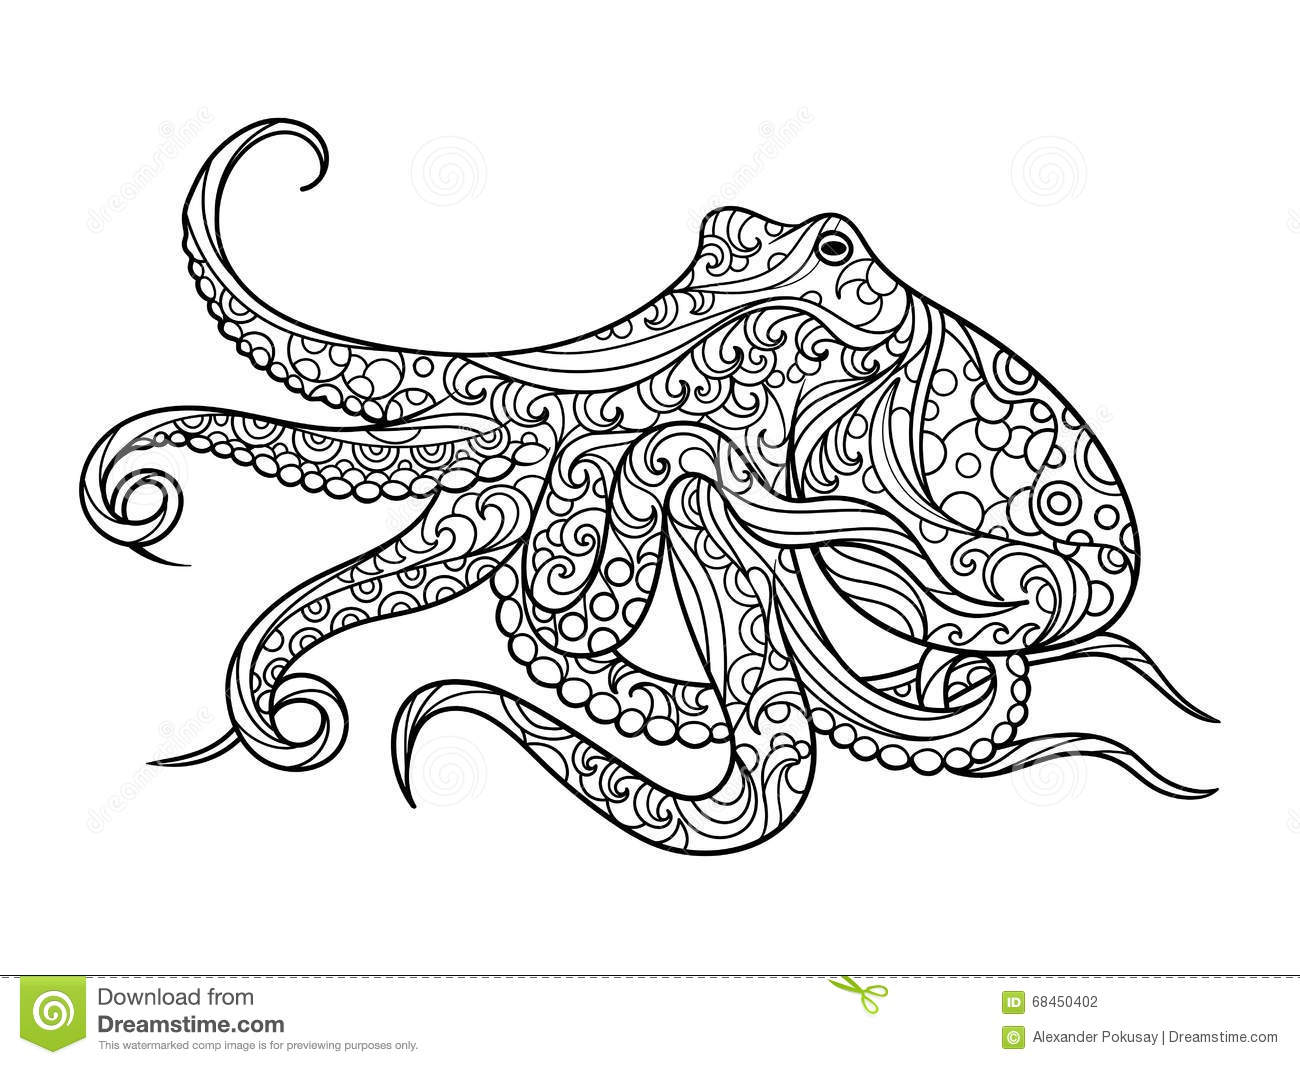 Octopus Coloring Book For Adults Vector